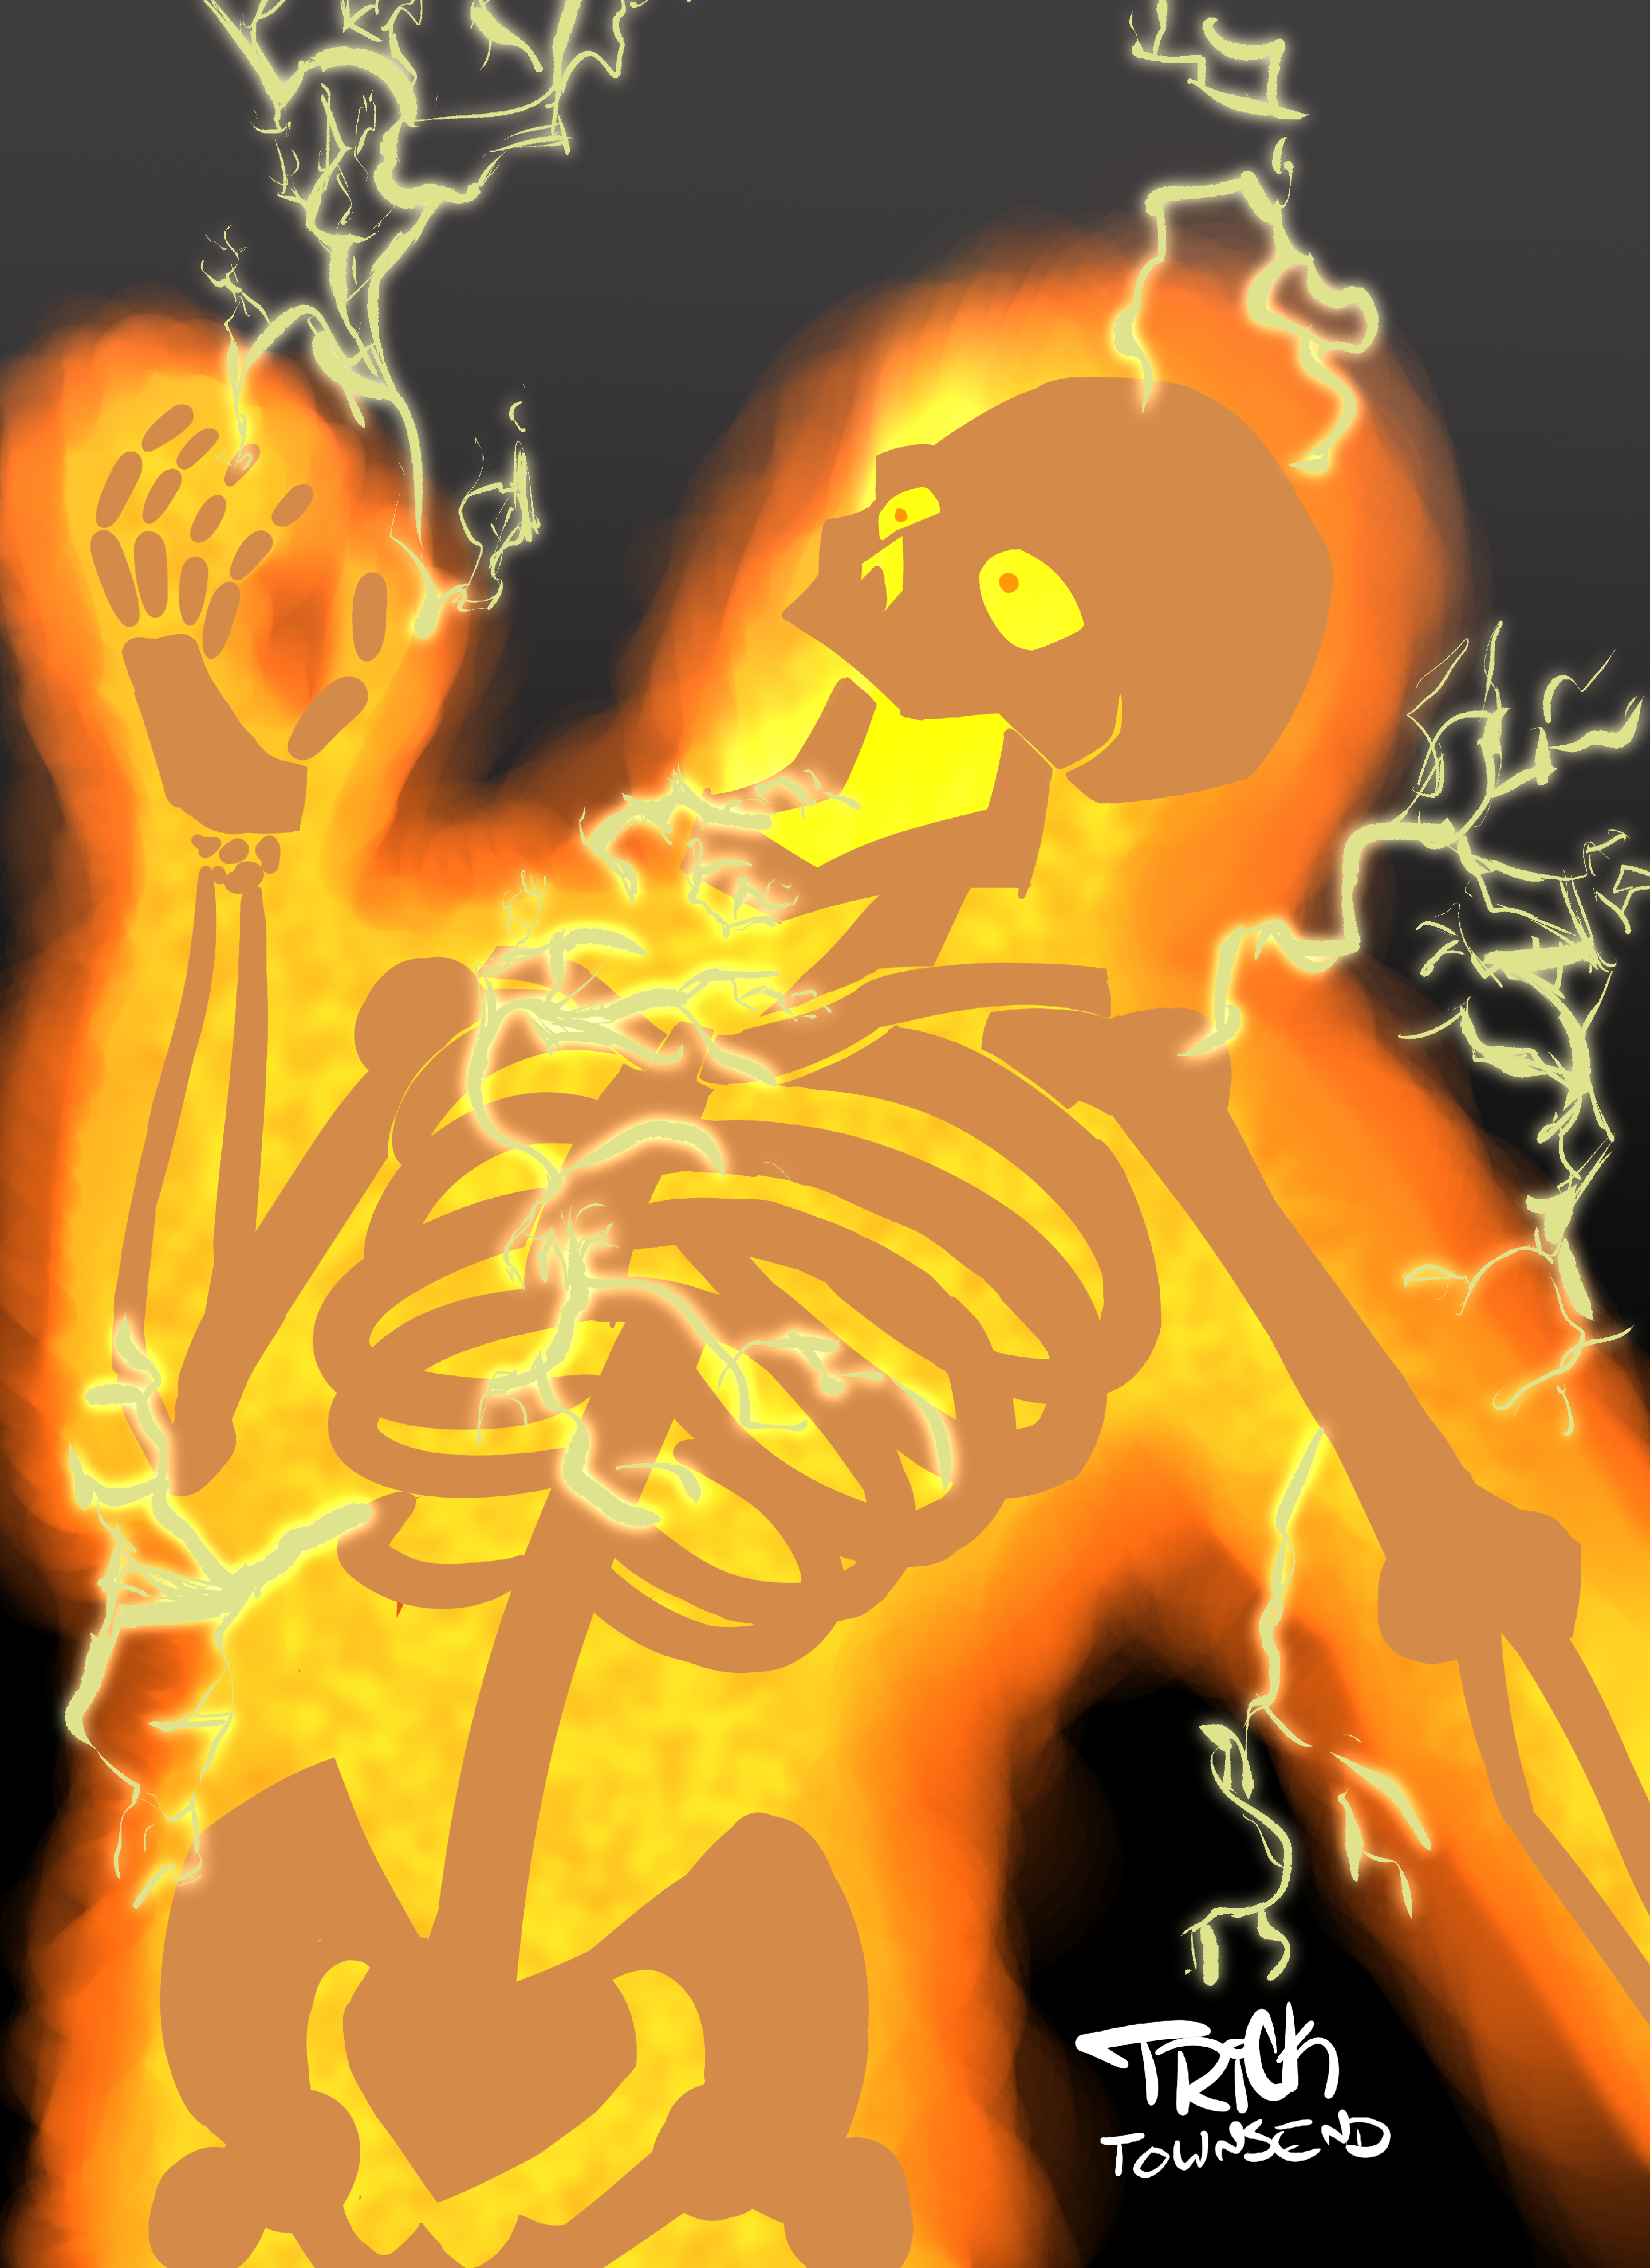 Scary Scooby: 10000 Volt Ghost by TrickTownsend on Newgrounds